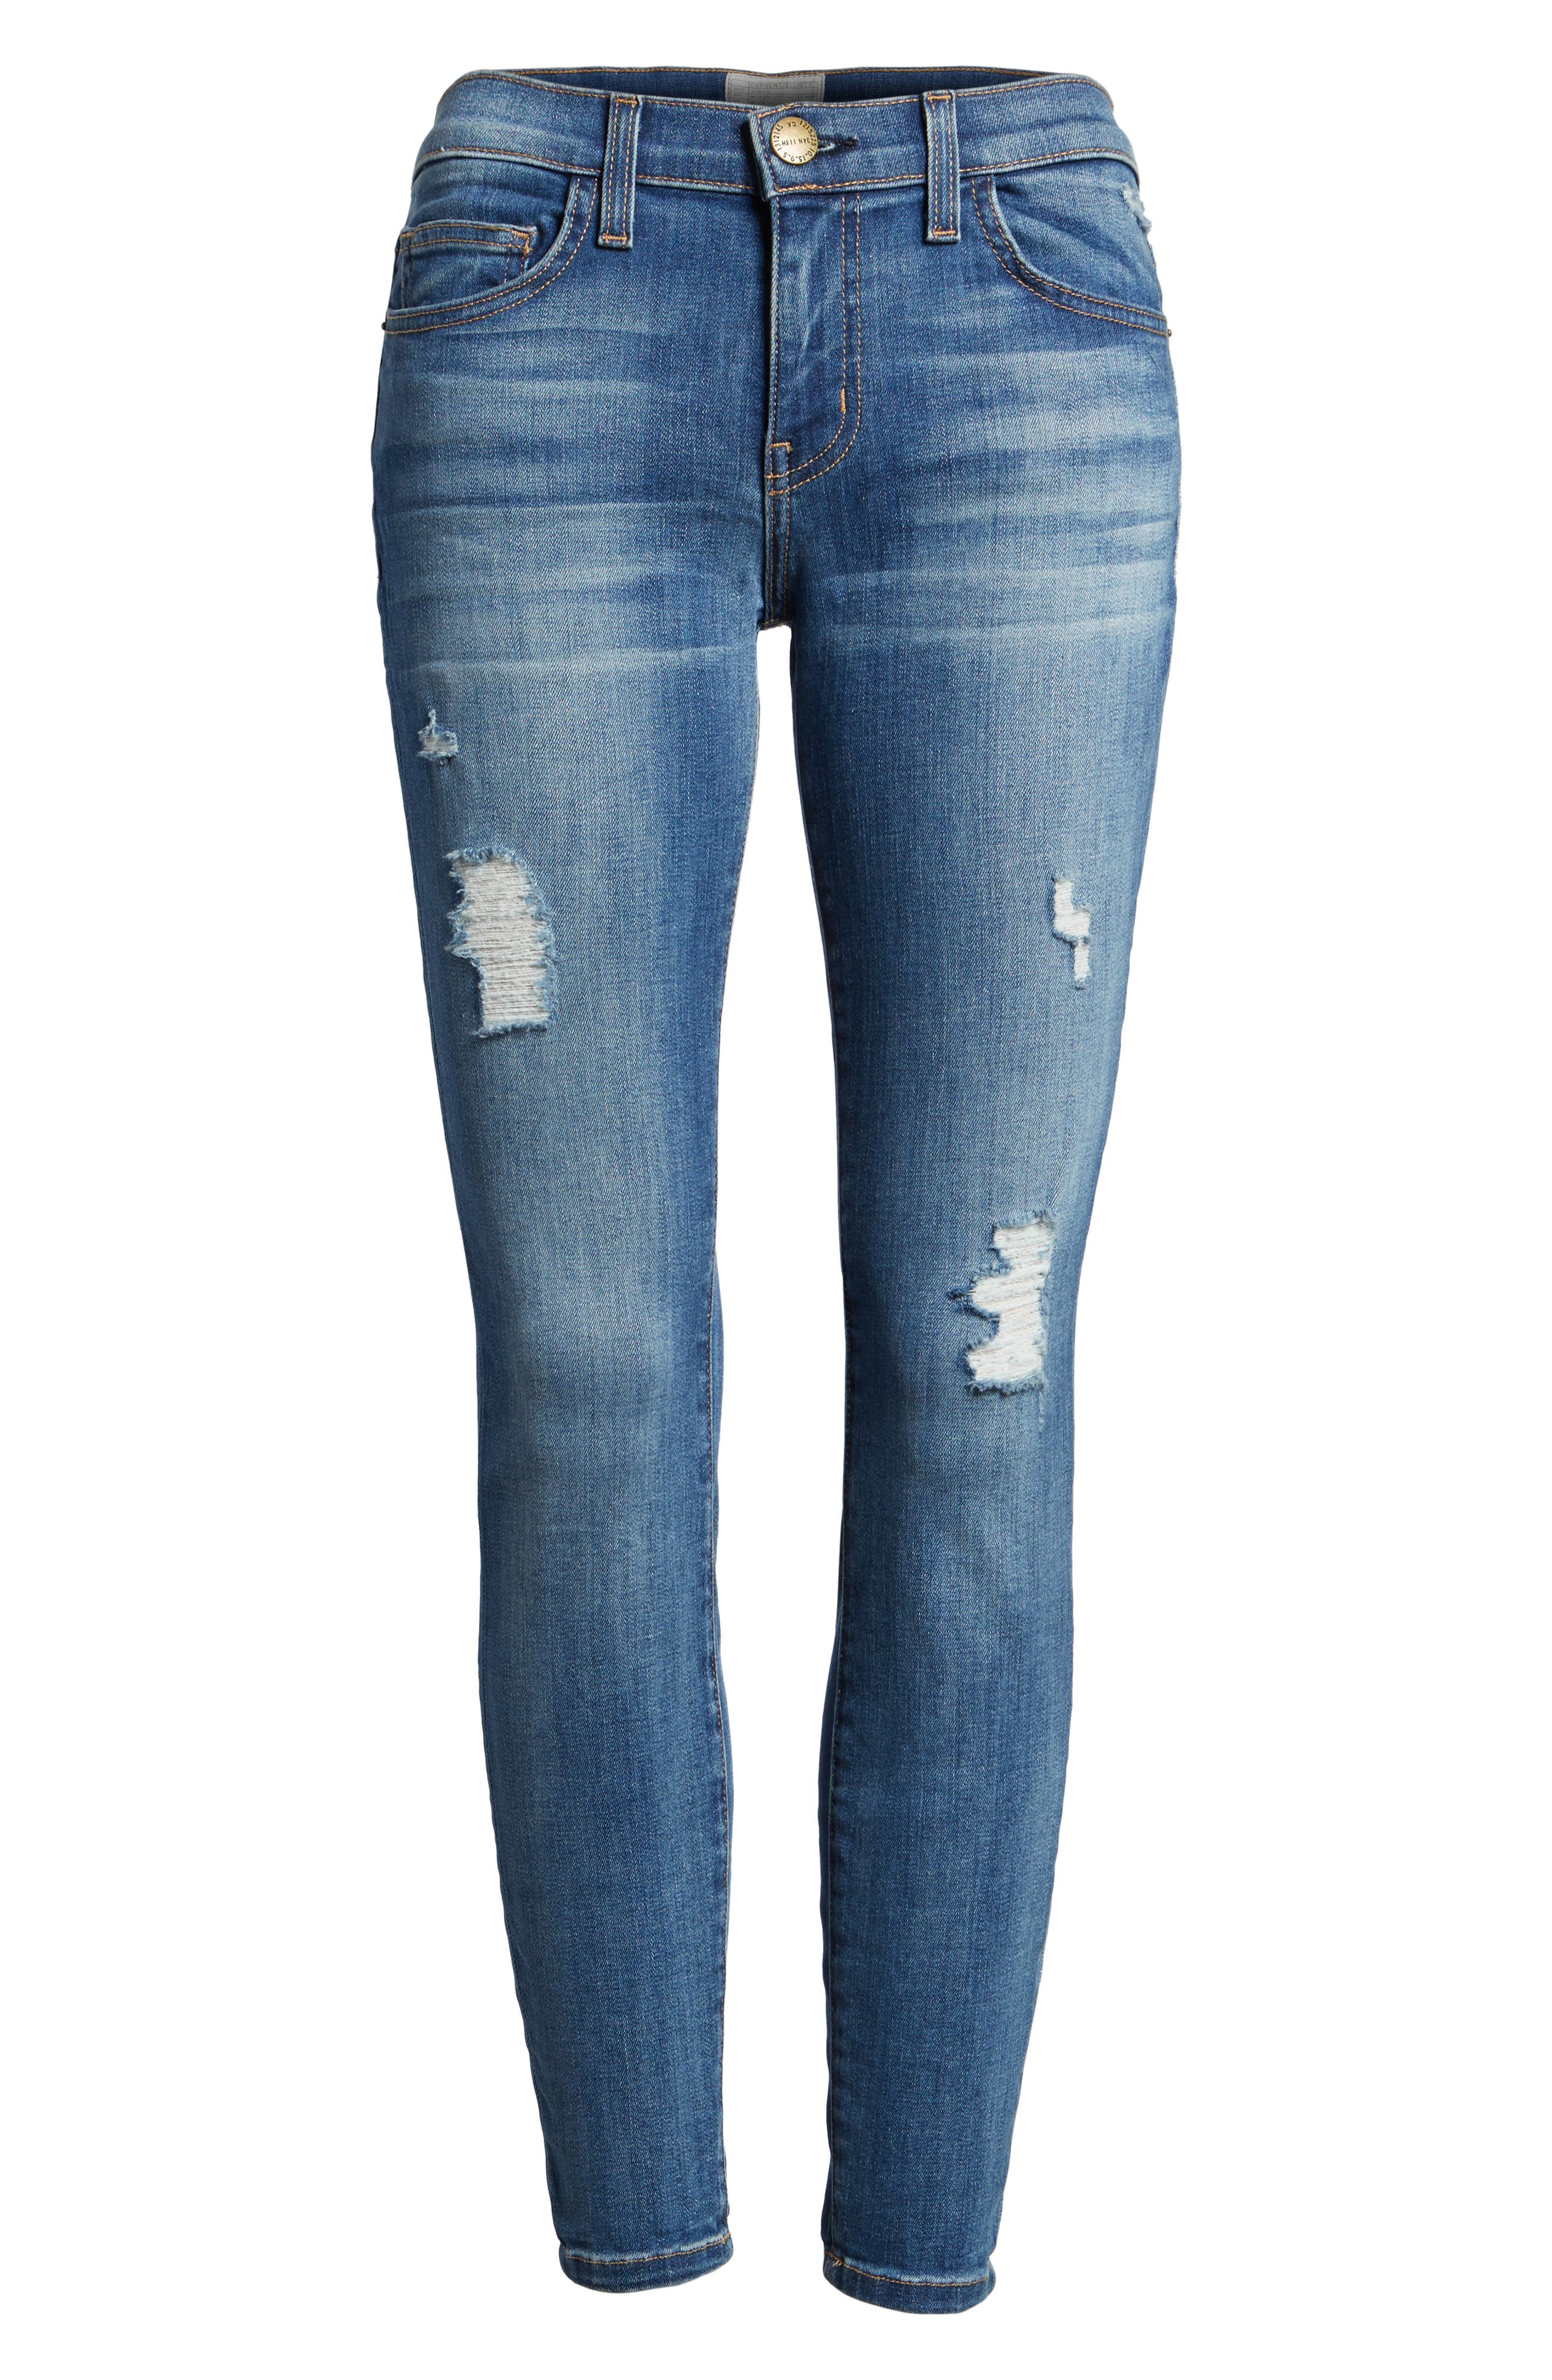 CURRENT/ELLIOTT 'The Stiletto' Destroyed Skinny Jeans, Main, color, 475